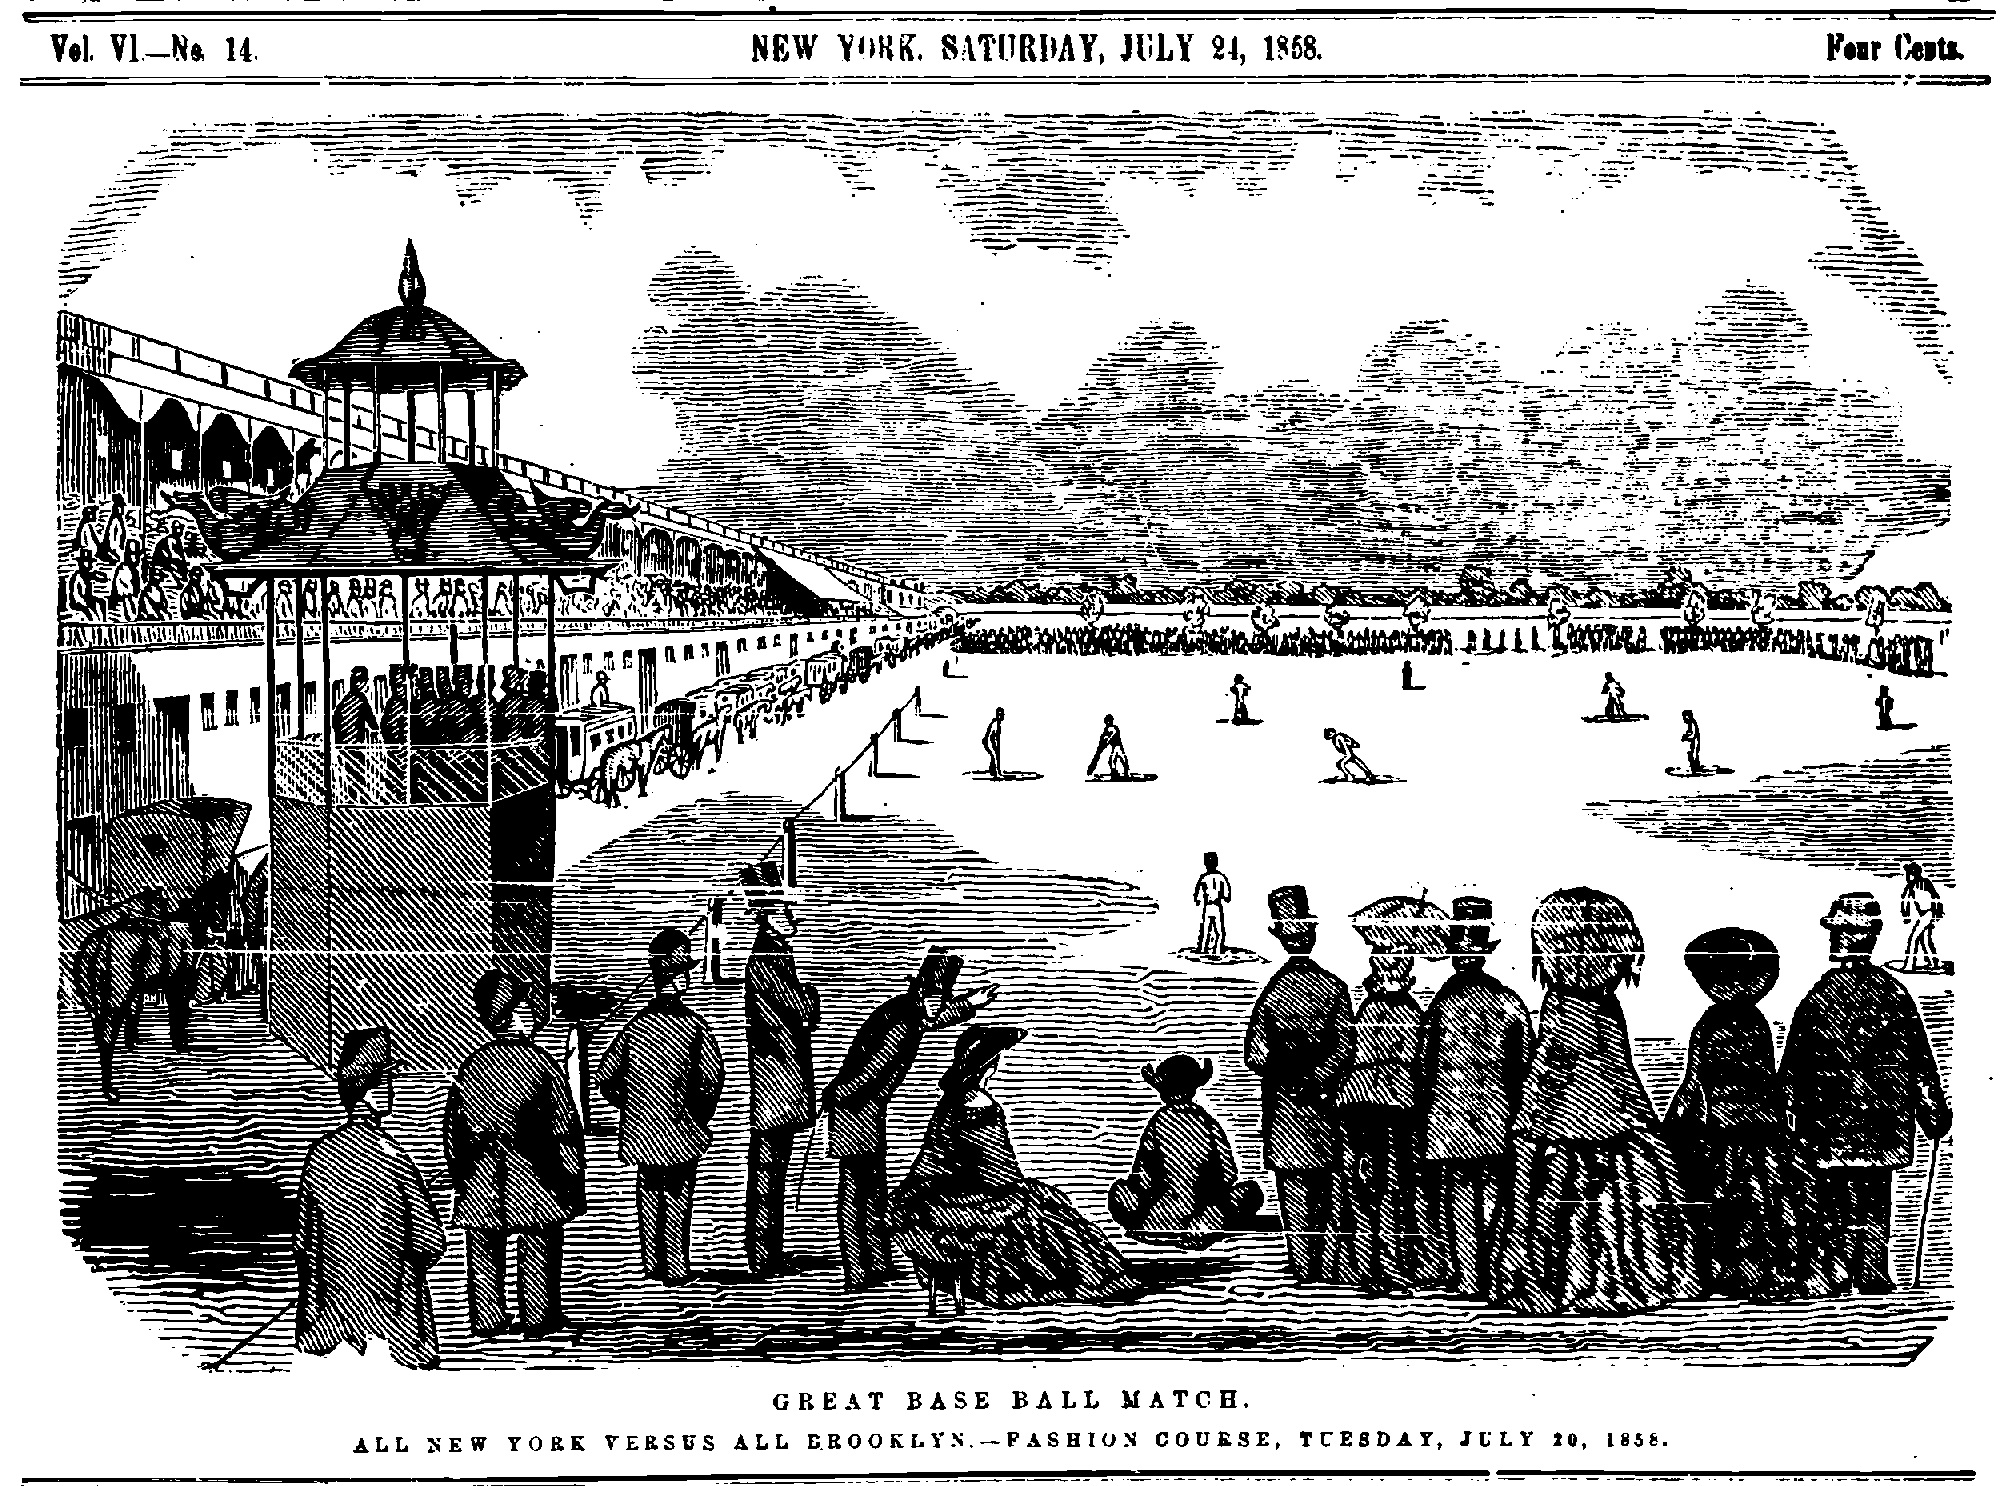 Game action from the July 20, 1858 match between the Brooklyn all-stars and New York all-stars.